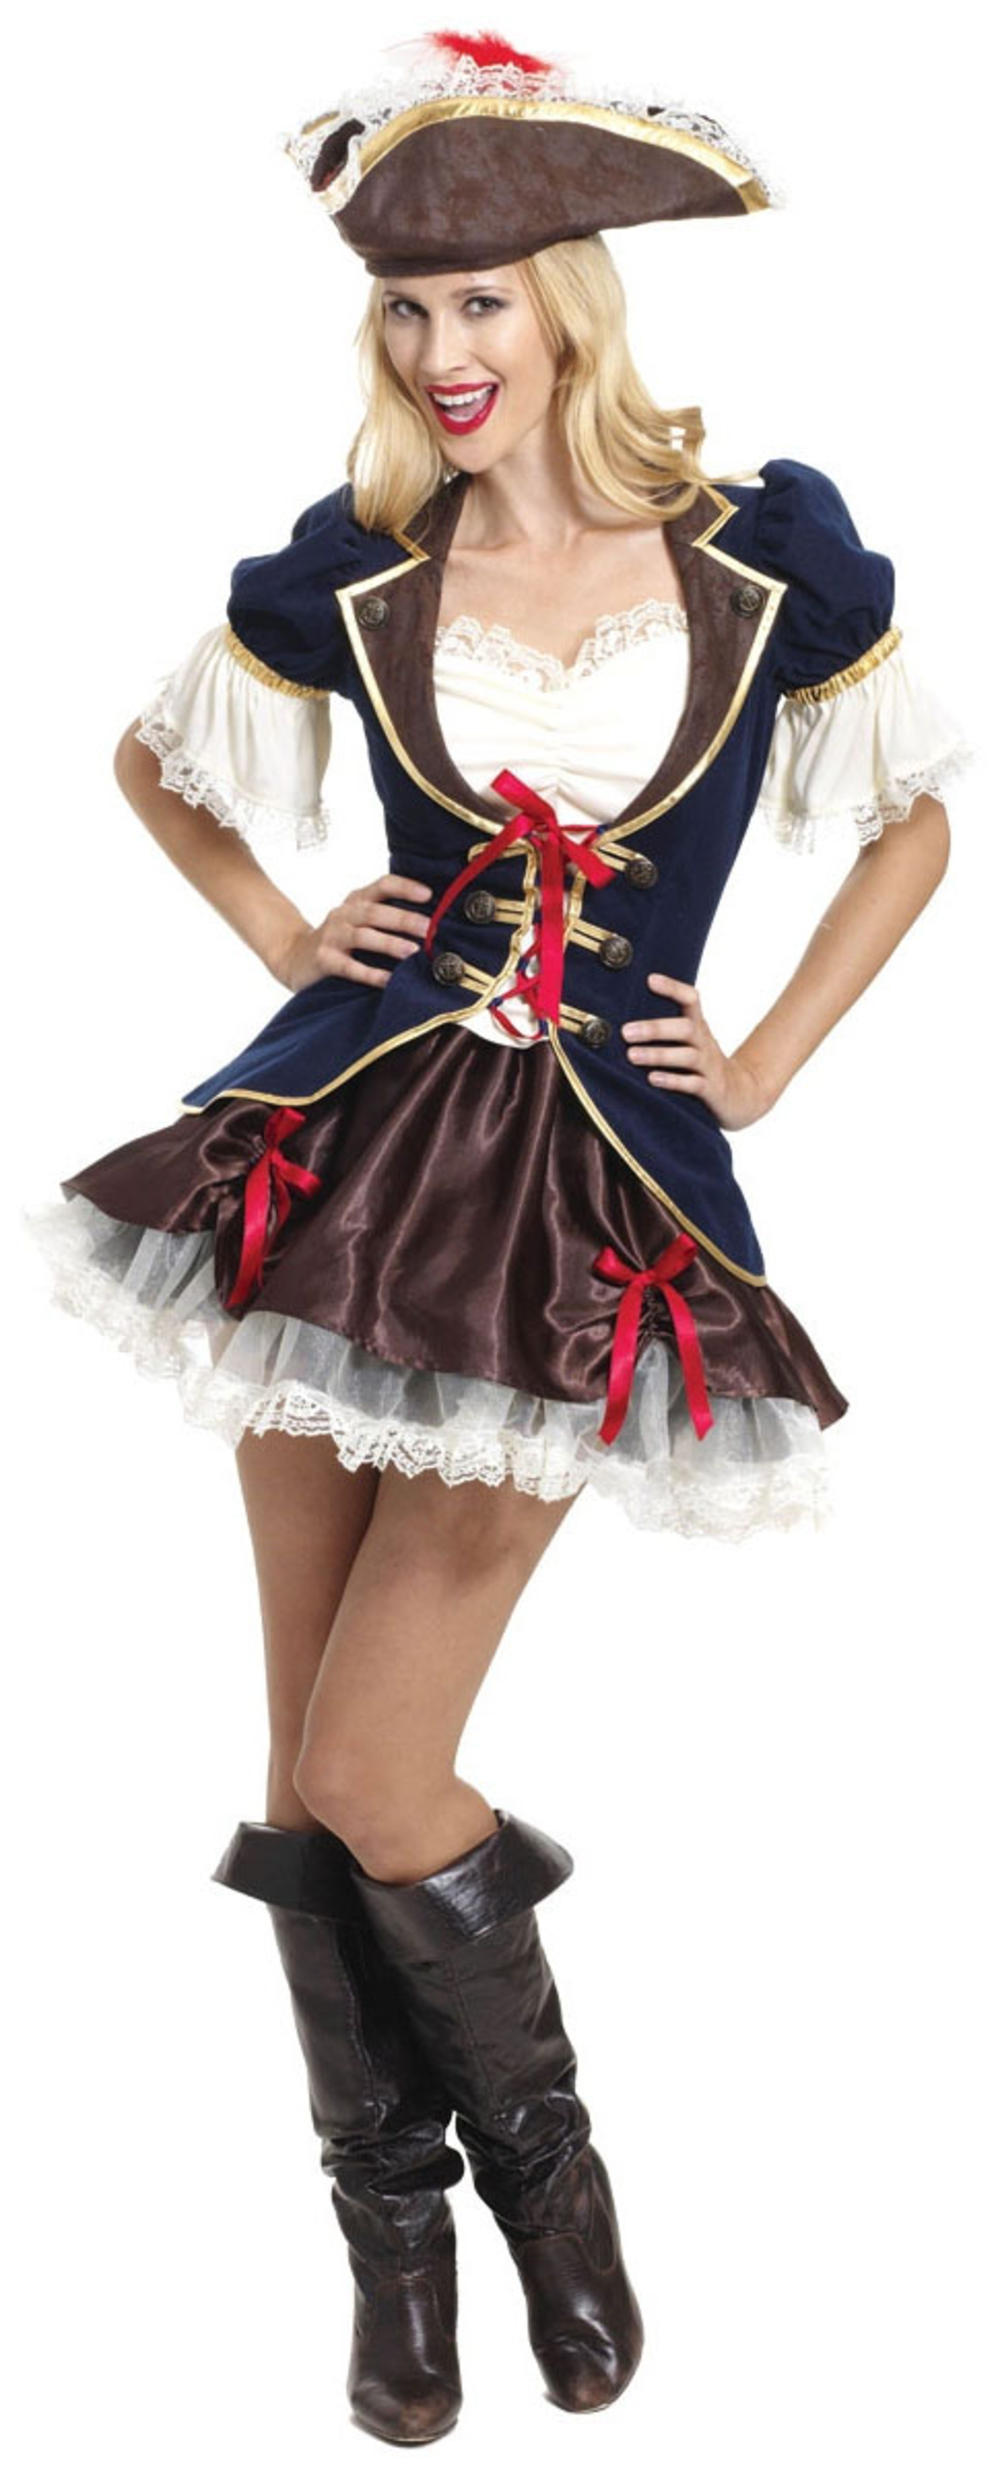 Pirate Captain Buccaneer Ladies Fancy Dress Pirates Adults Costume Outfit + Hat